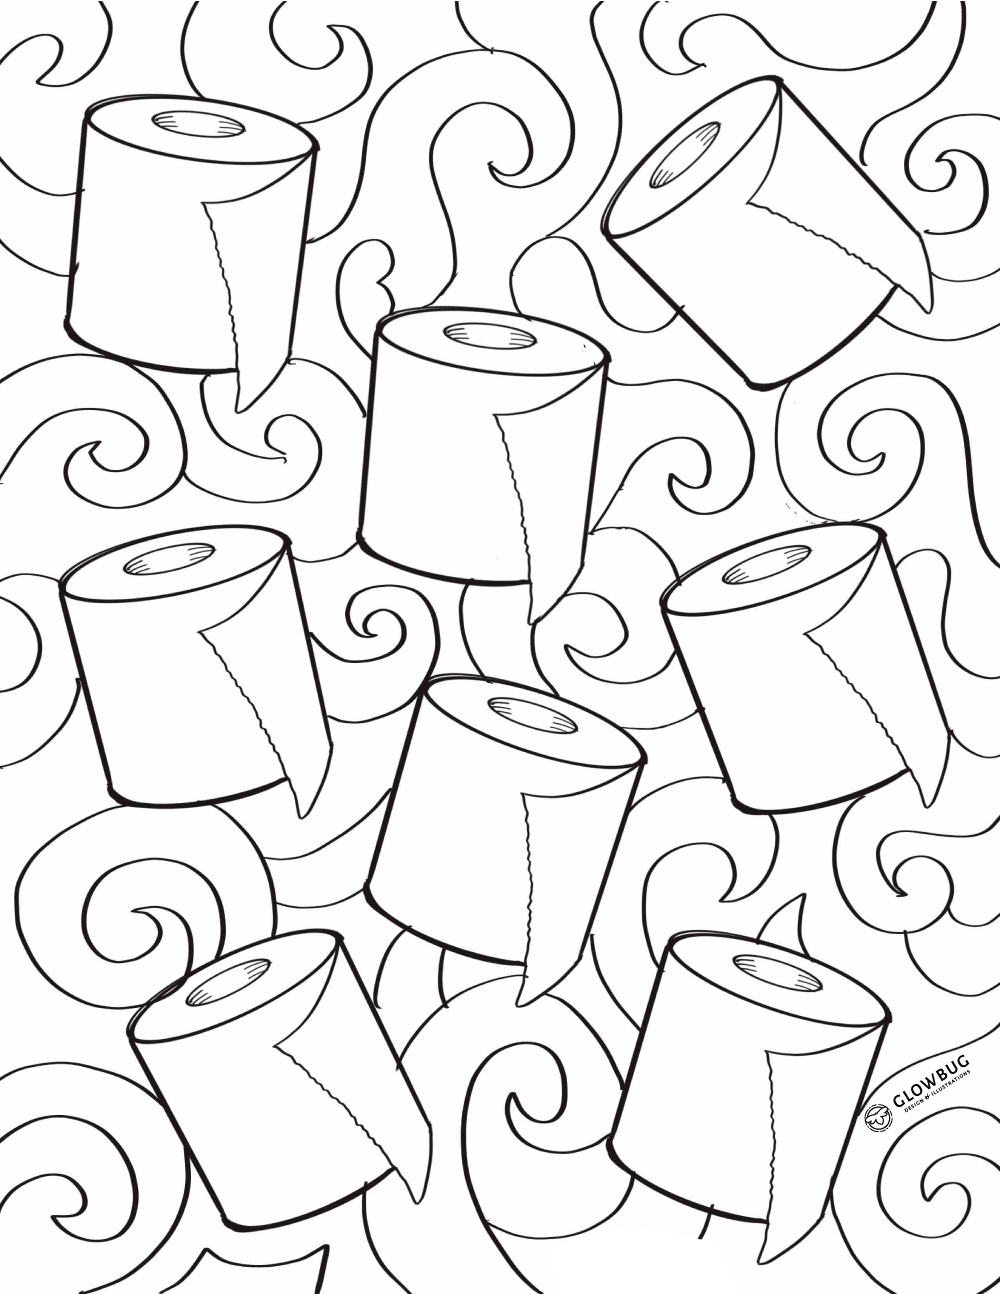 toilet paper colouring sheet